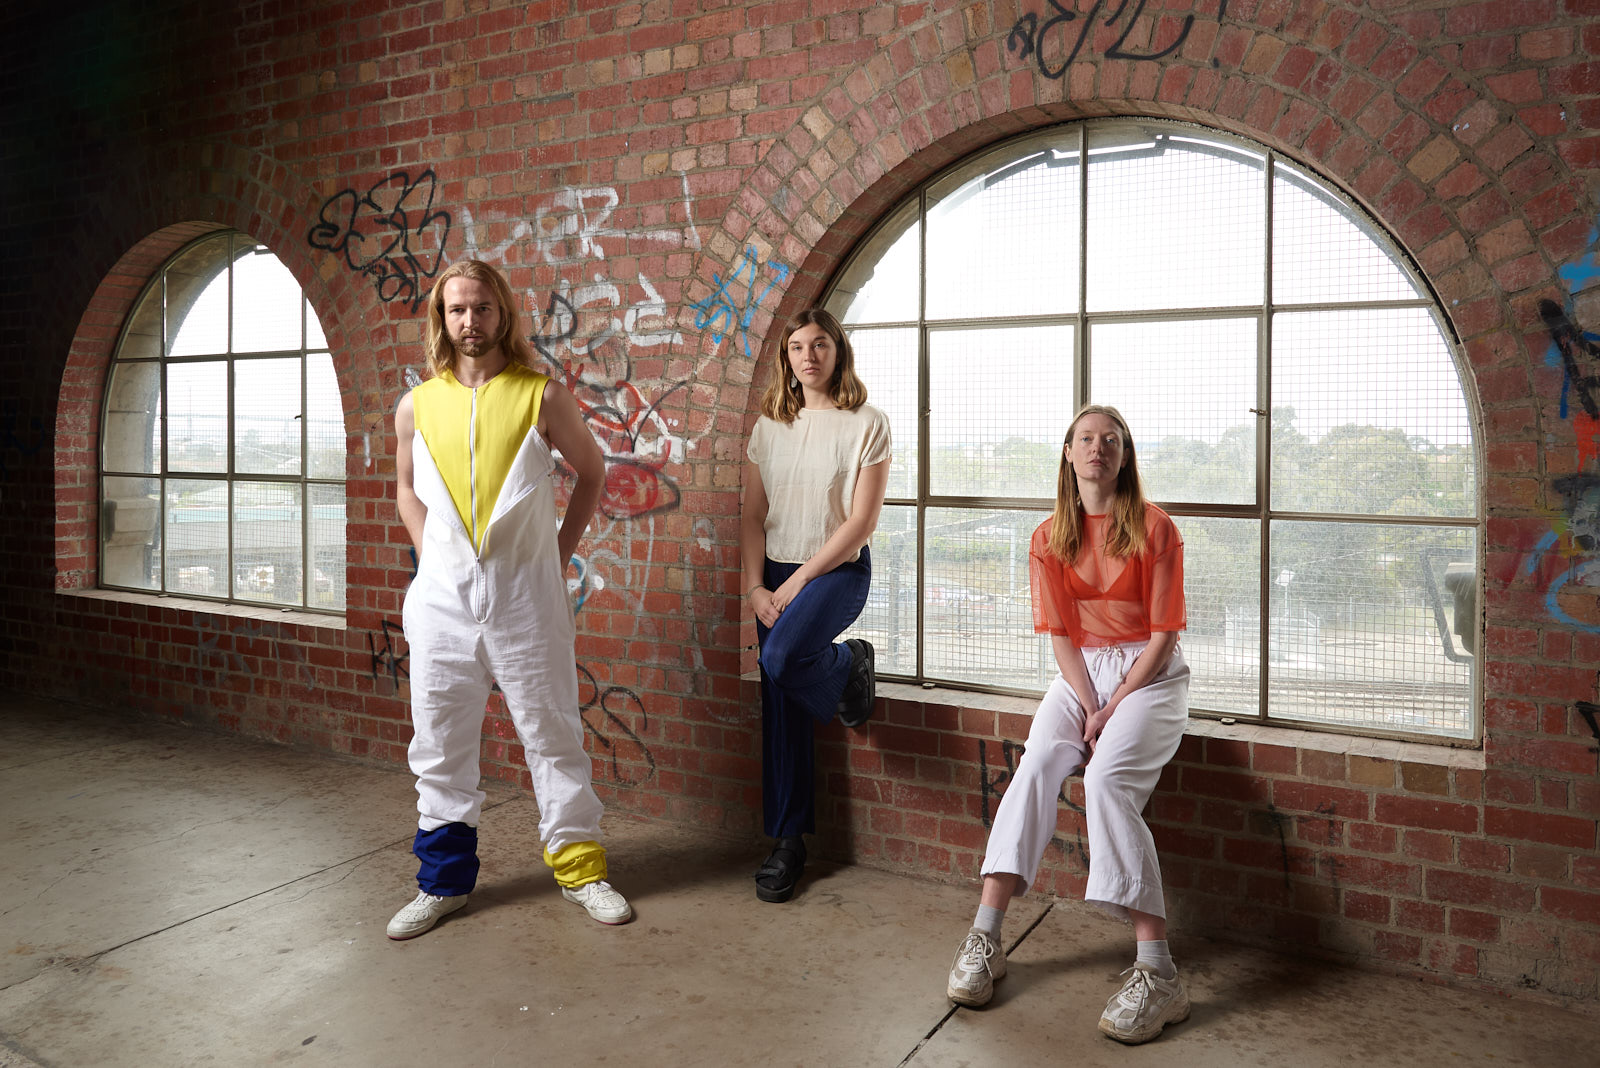 Choreographers Geoffrey Watson, Siobhan McKenna and Sarah Aiken stand in front of a semi-circular window and brick wall